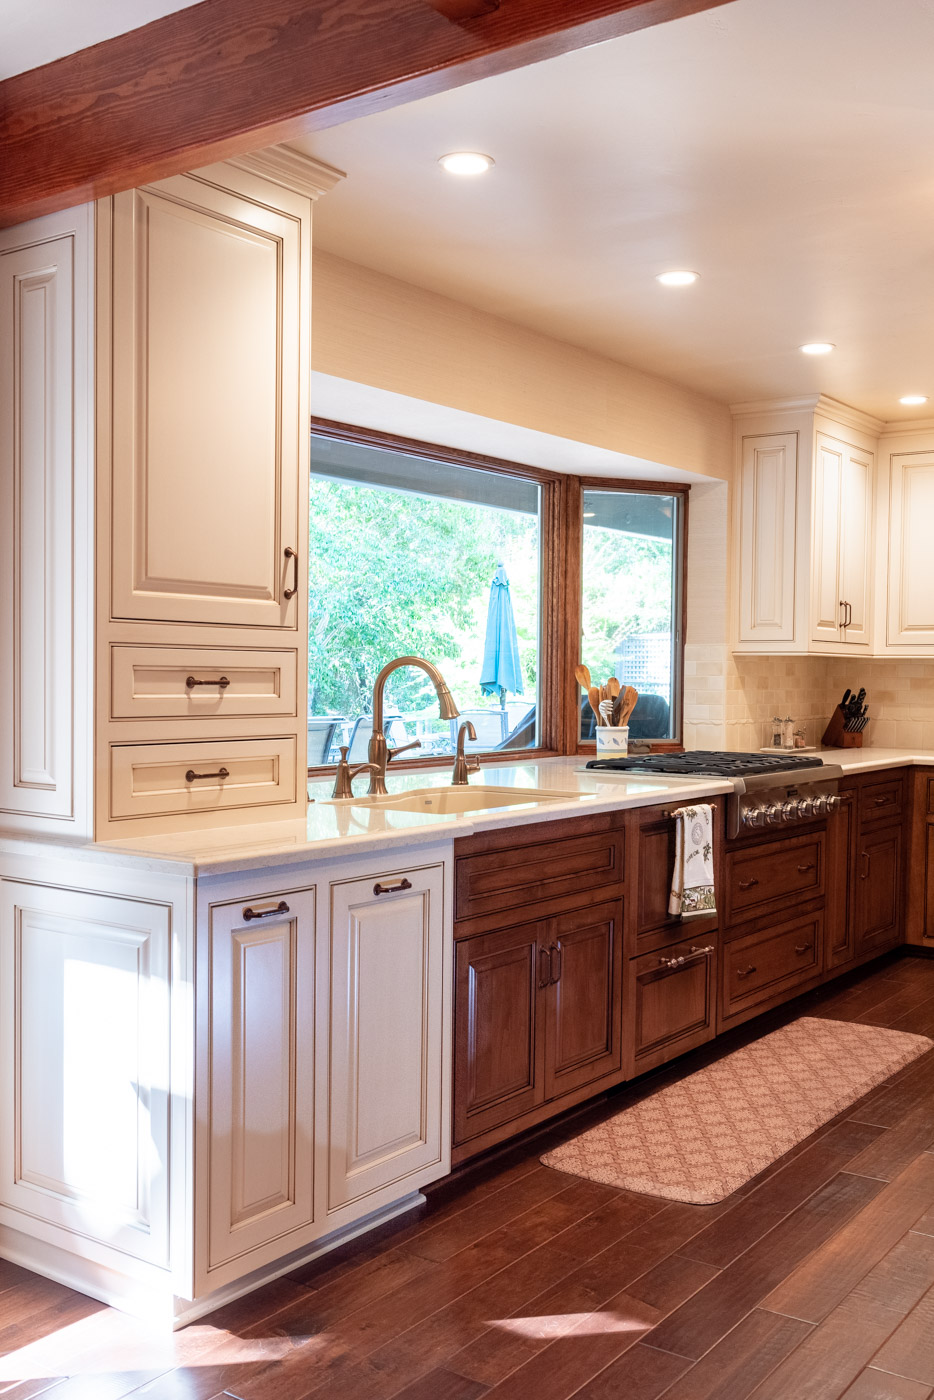 English Country custom kitchen cabinets with painted and wood stain cabinet finishes